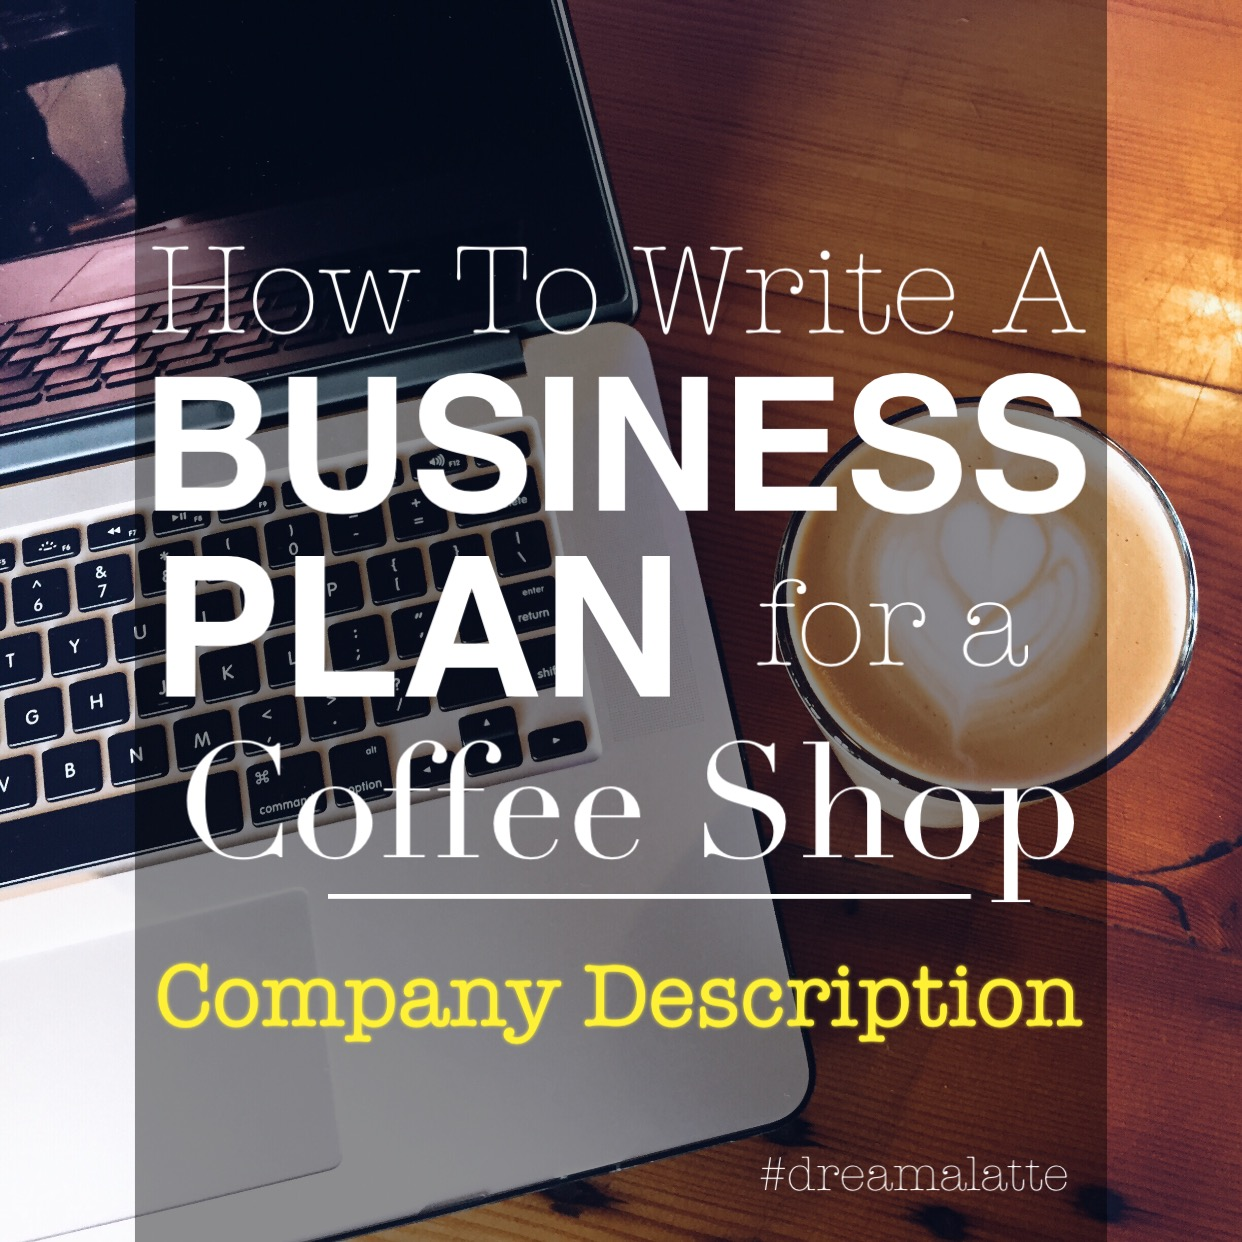 Shop small business plan